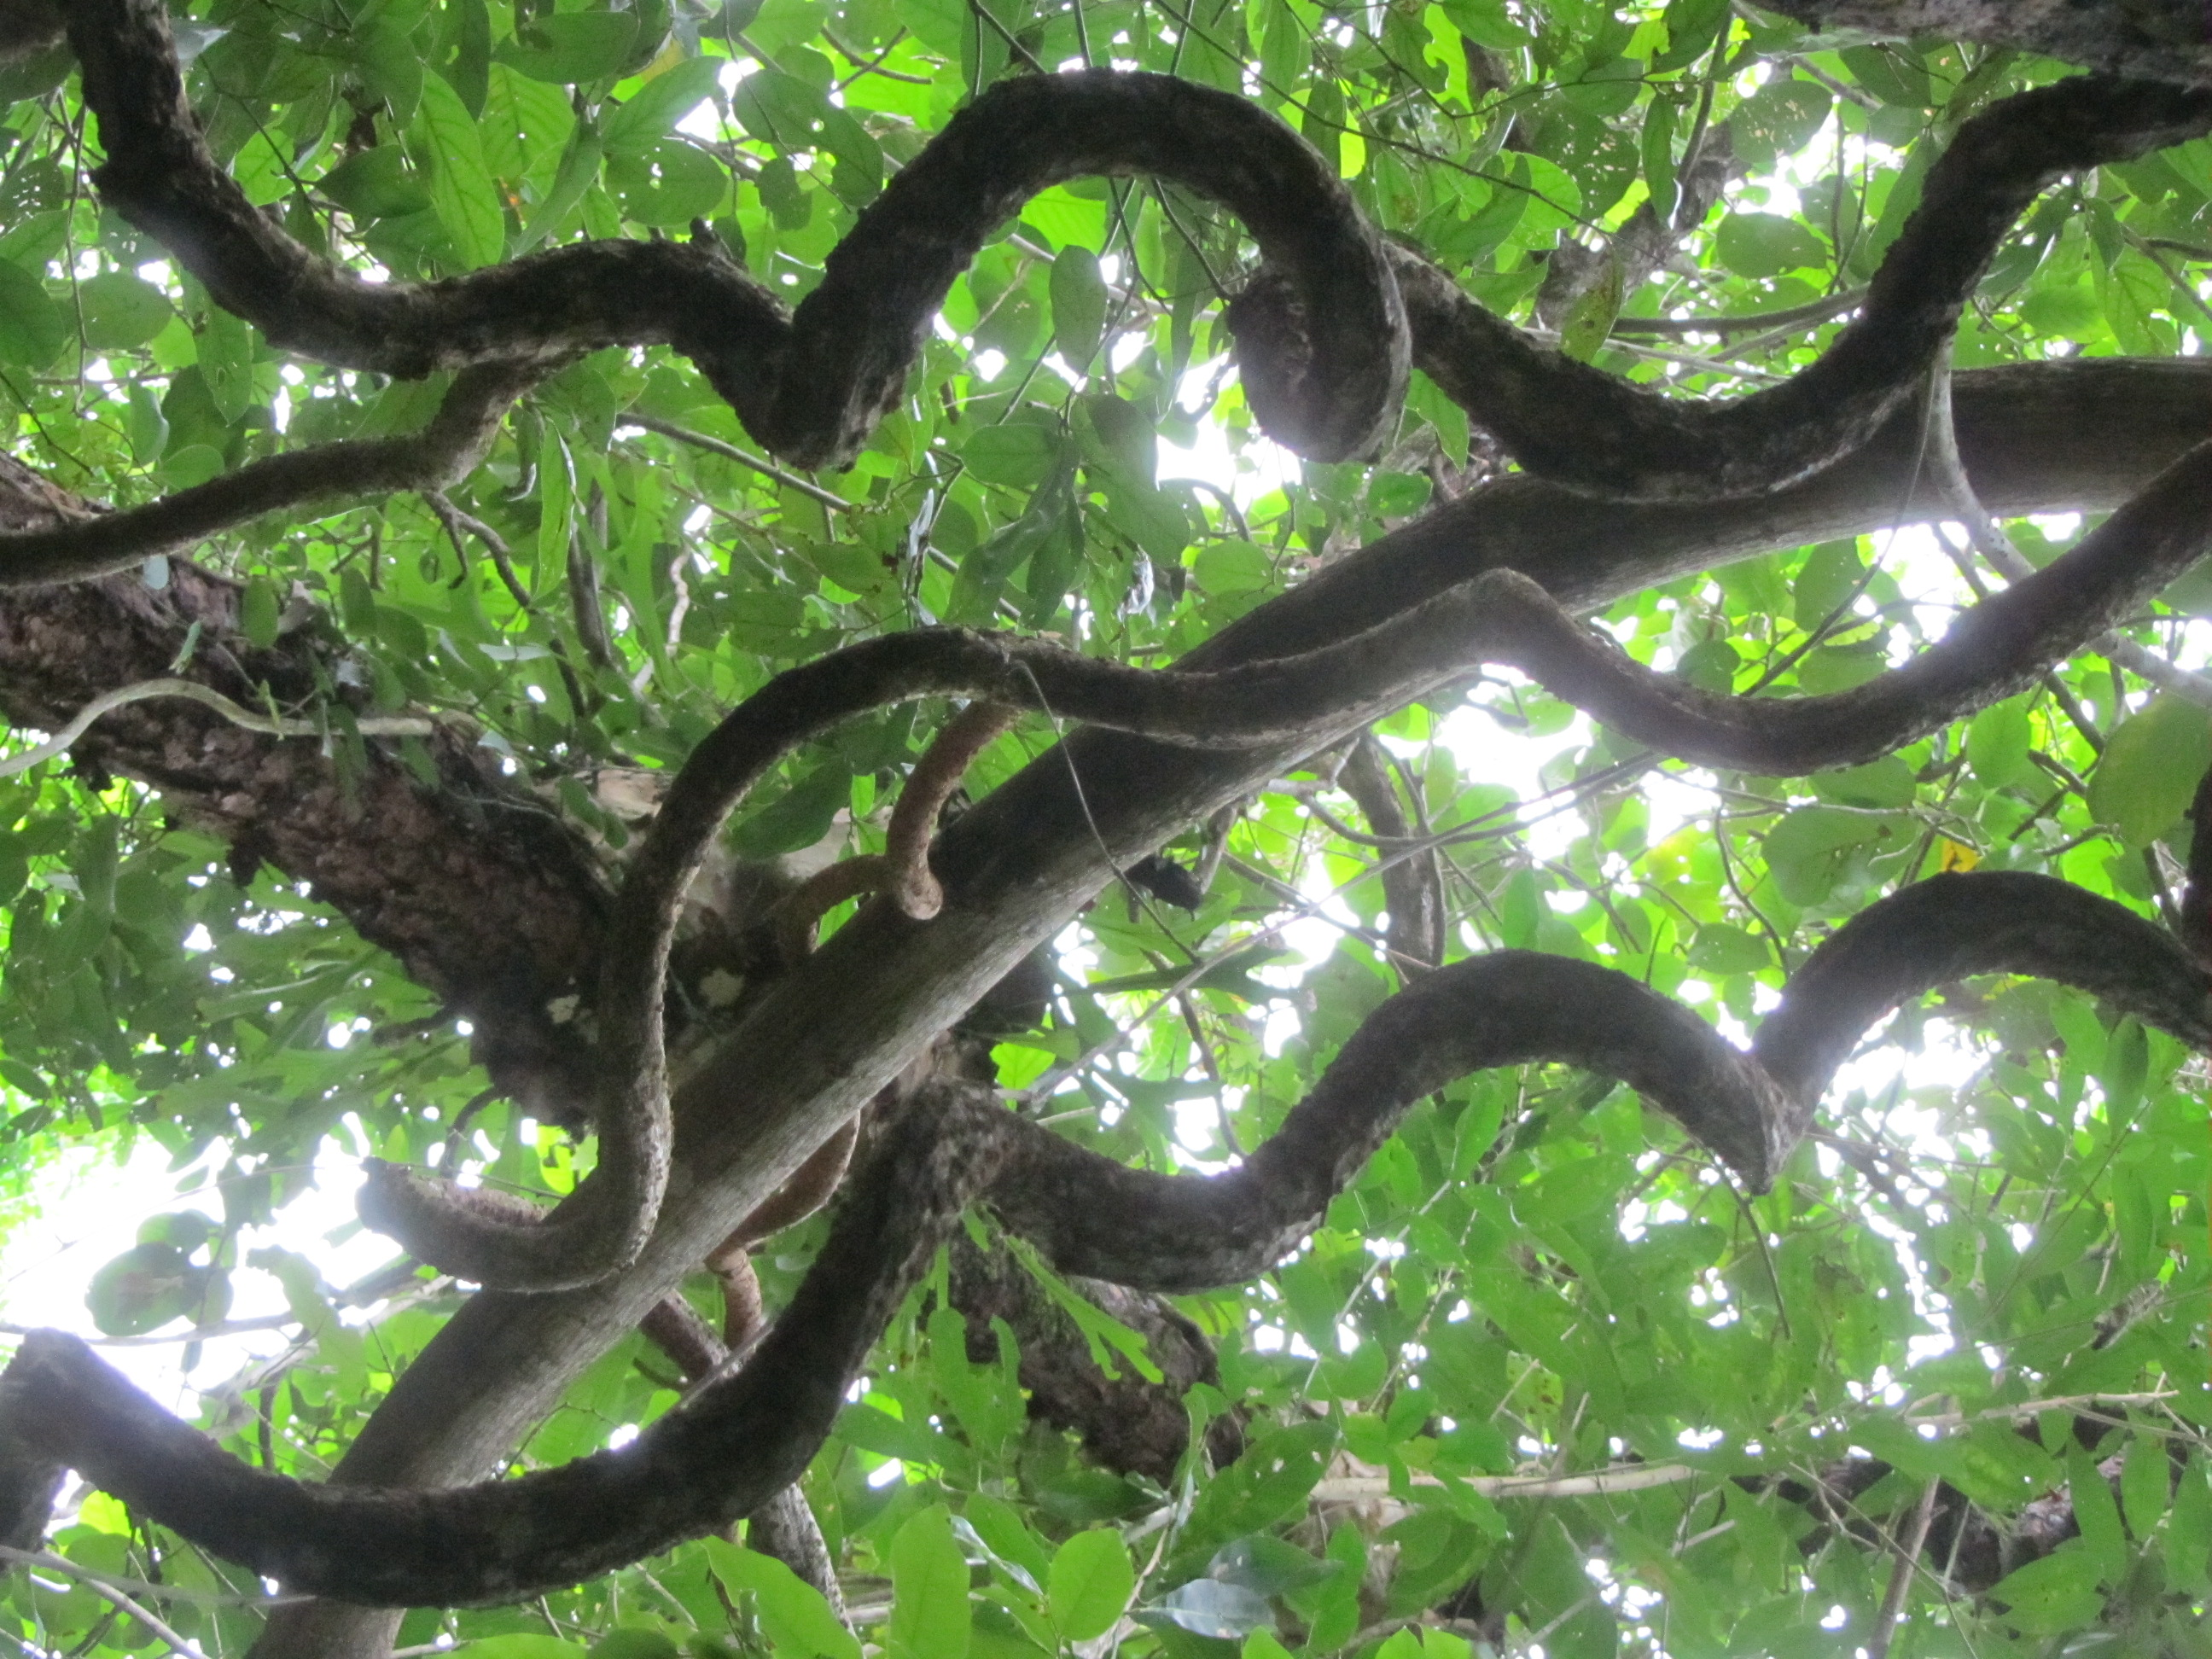 Jungles and Vines on Pinterest